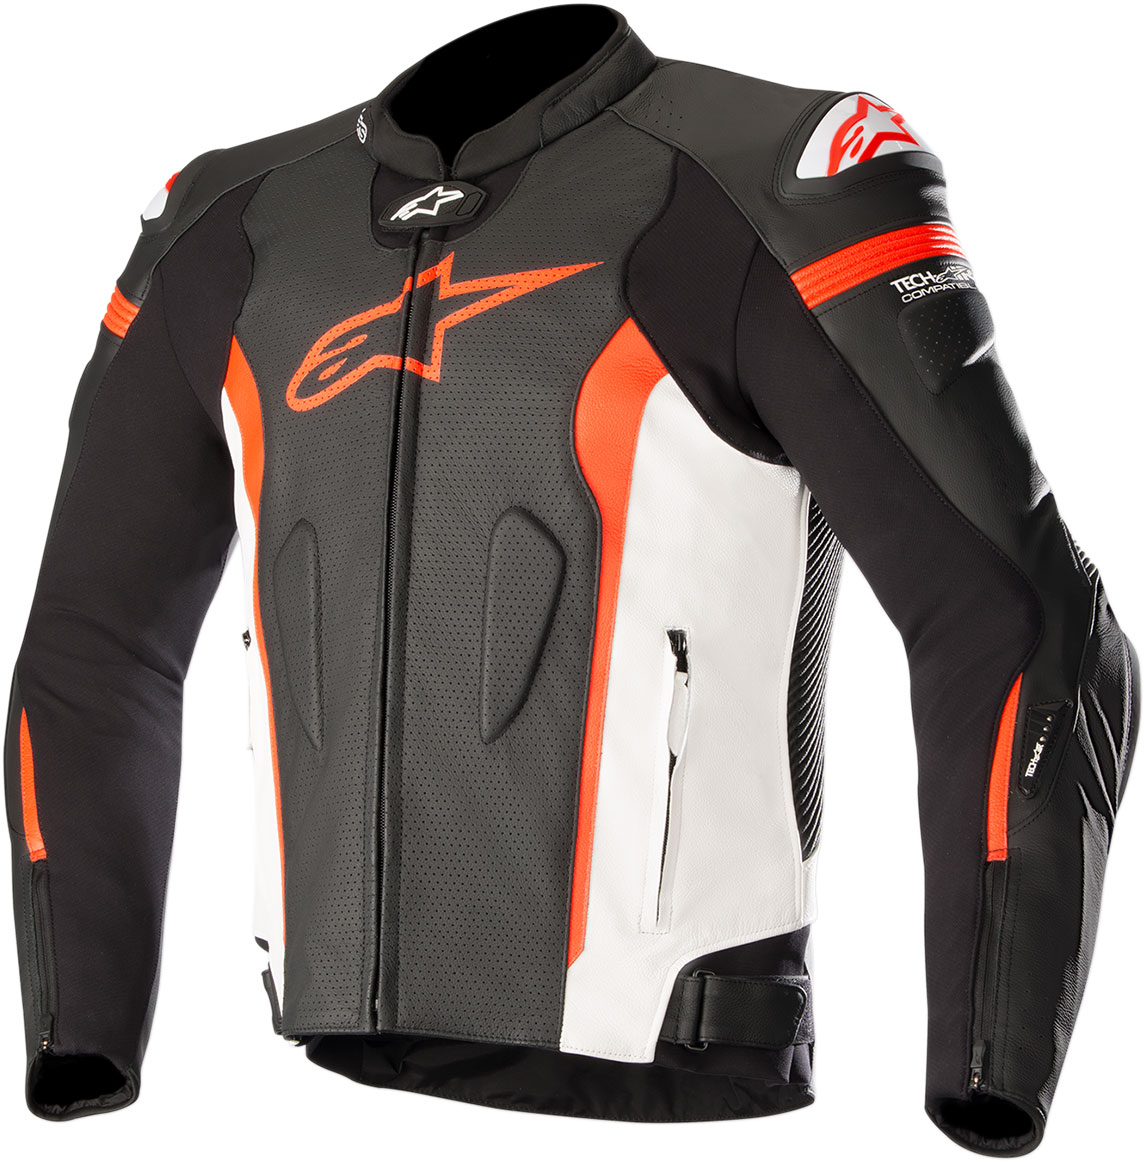 Alpinestars MISSILE Leather Jacket Tech-Air Compatible (Black/White/Fluo Red)